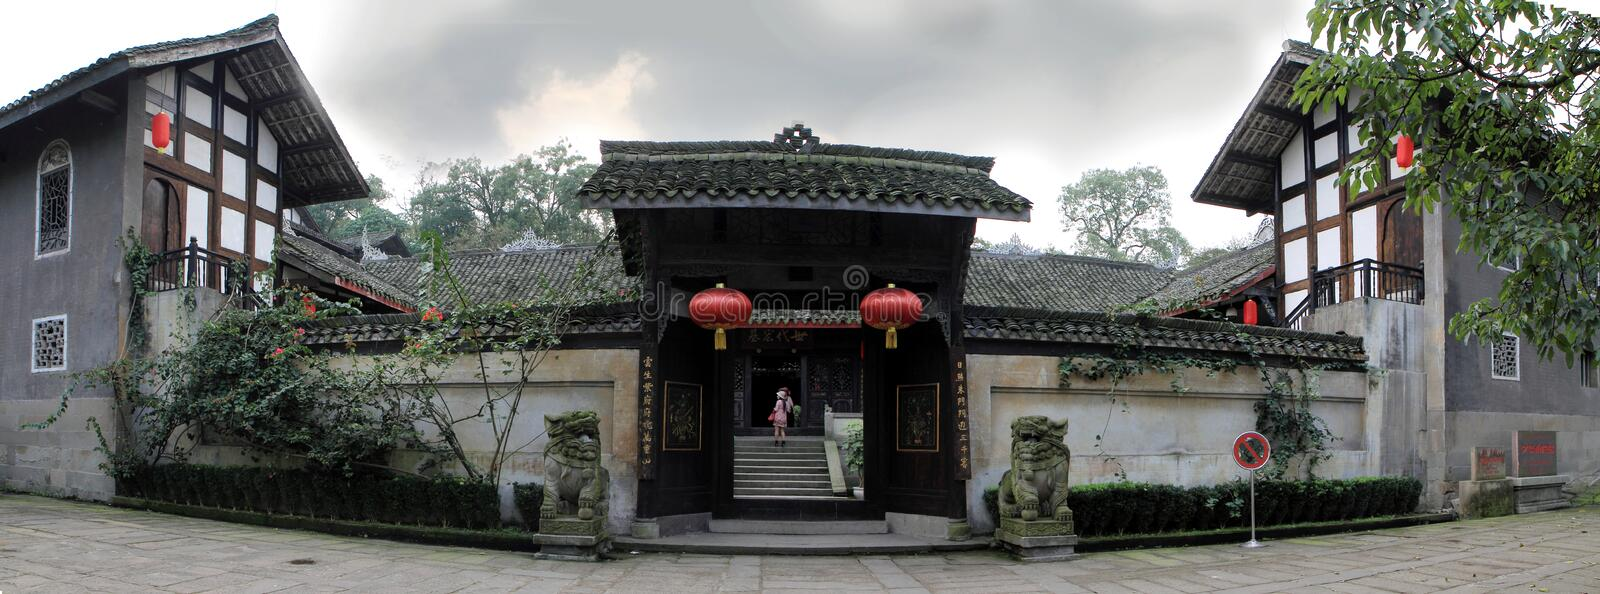 China Sichuan ancient residential door. Sichuan Province south of the ancient folk houses, built in the Ming Dynasty Wanli is a national key cultural relics stock photos